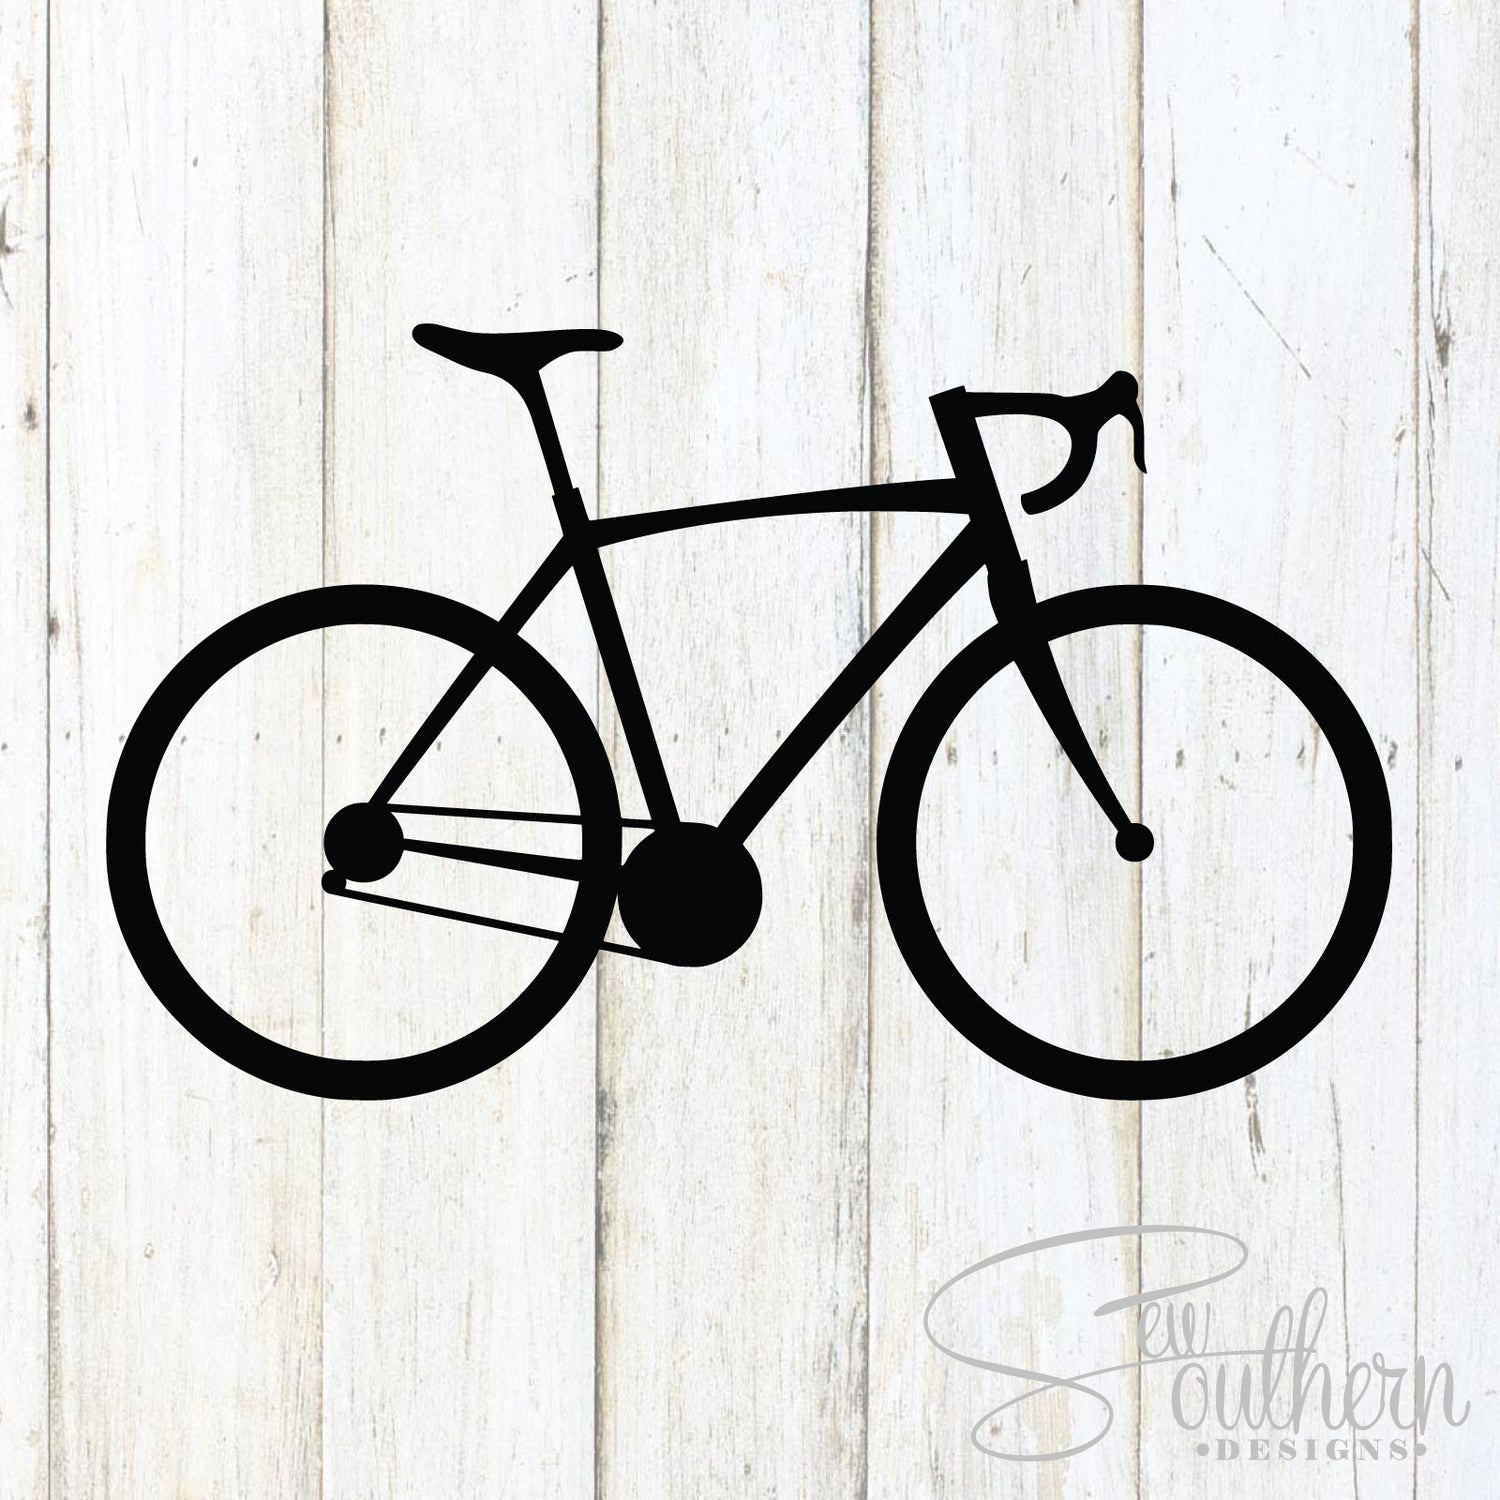 Road bike decal sew southern designs